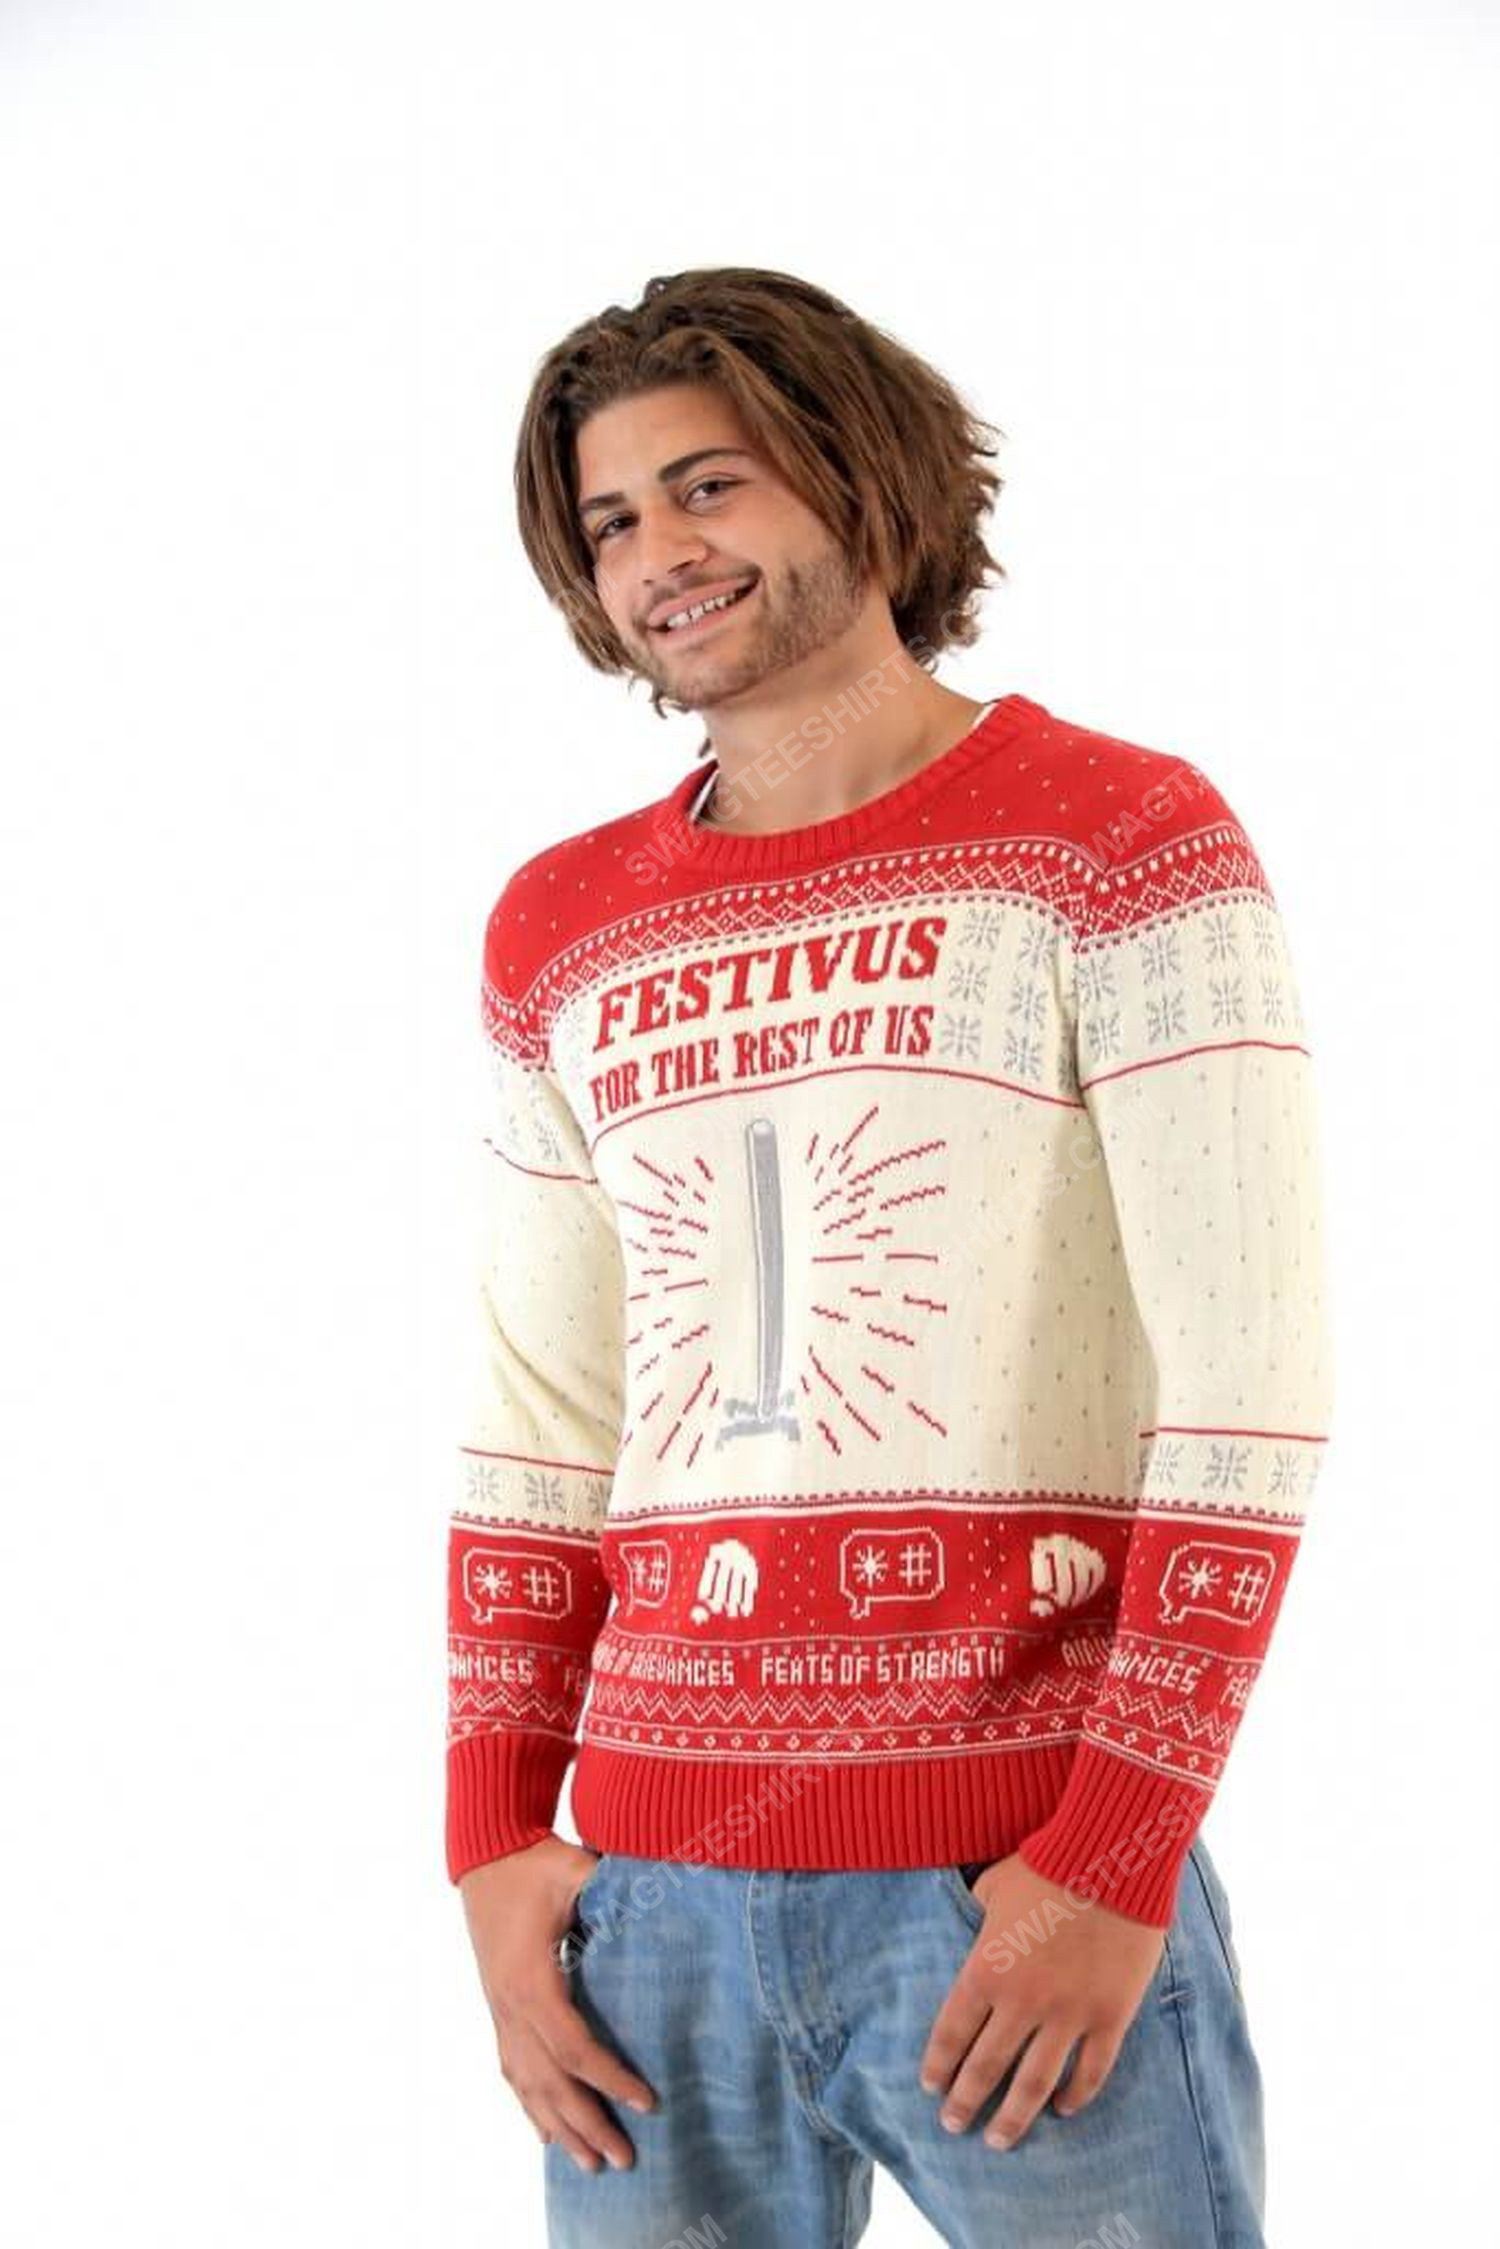 Seinfeld festivus for the rest of us pole full print ugly christmas sweater 4